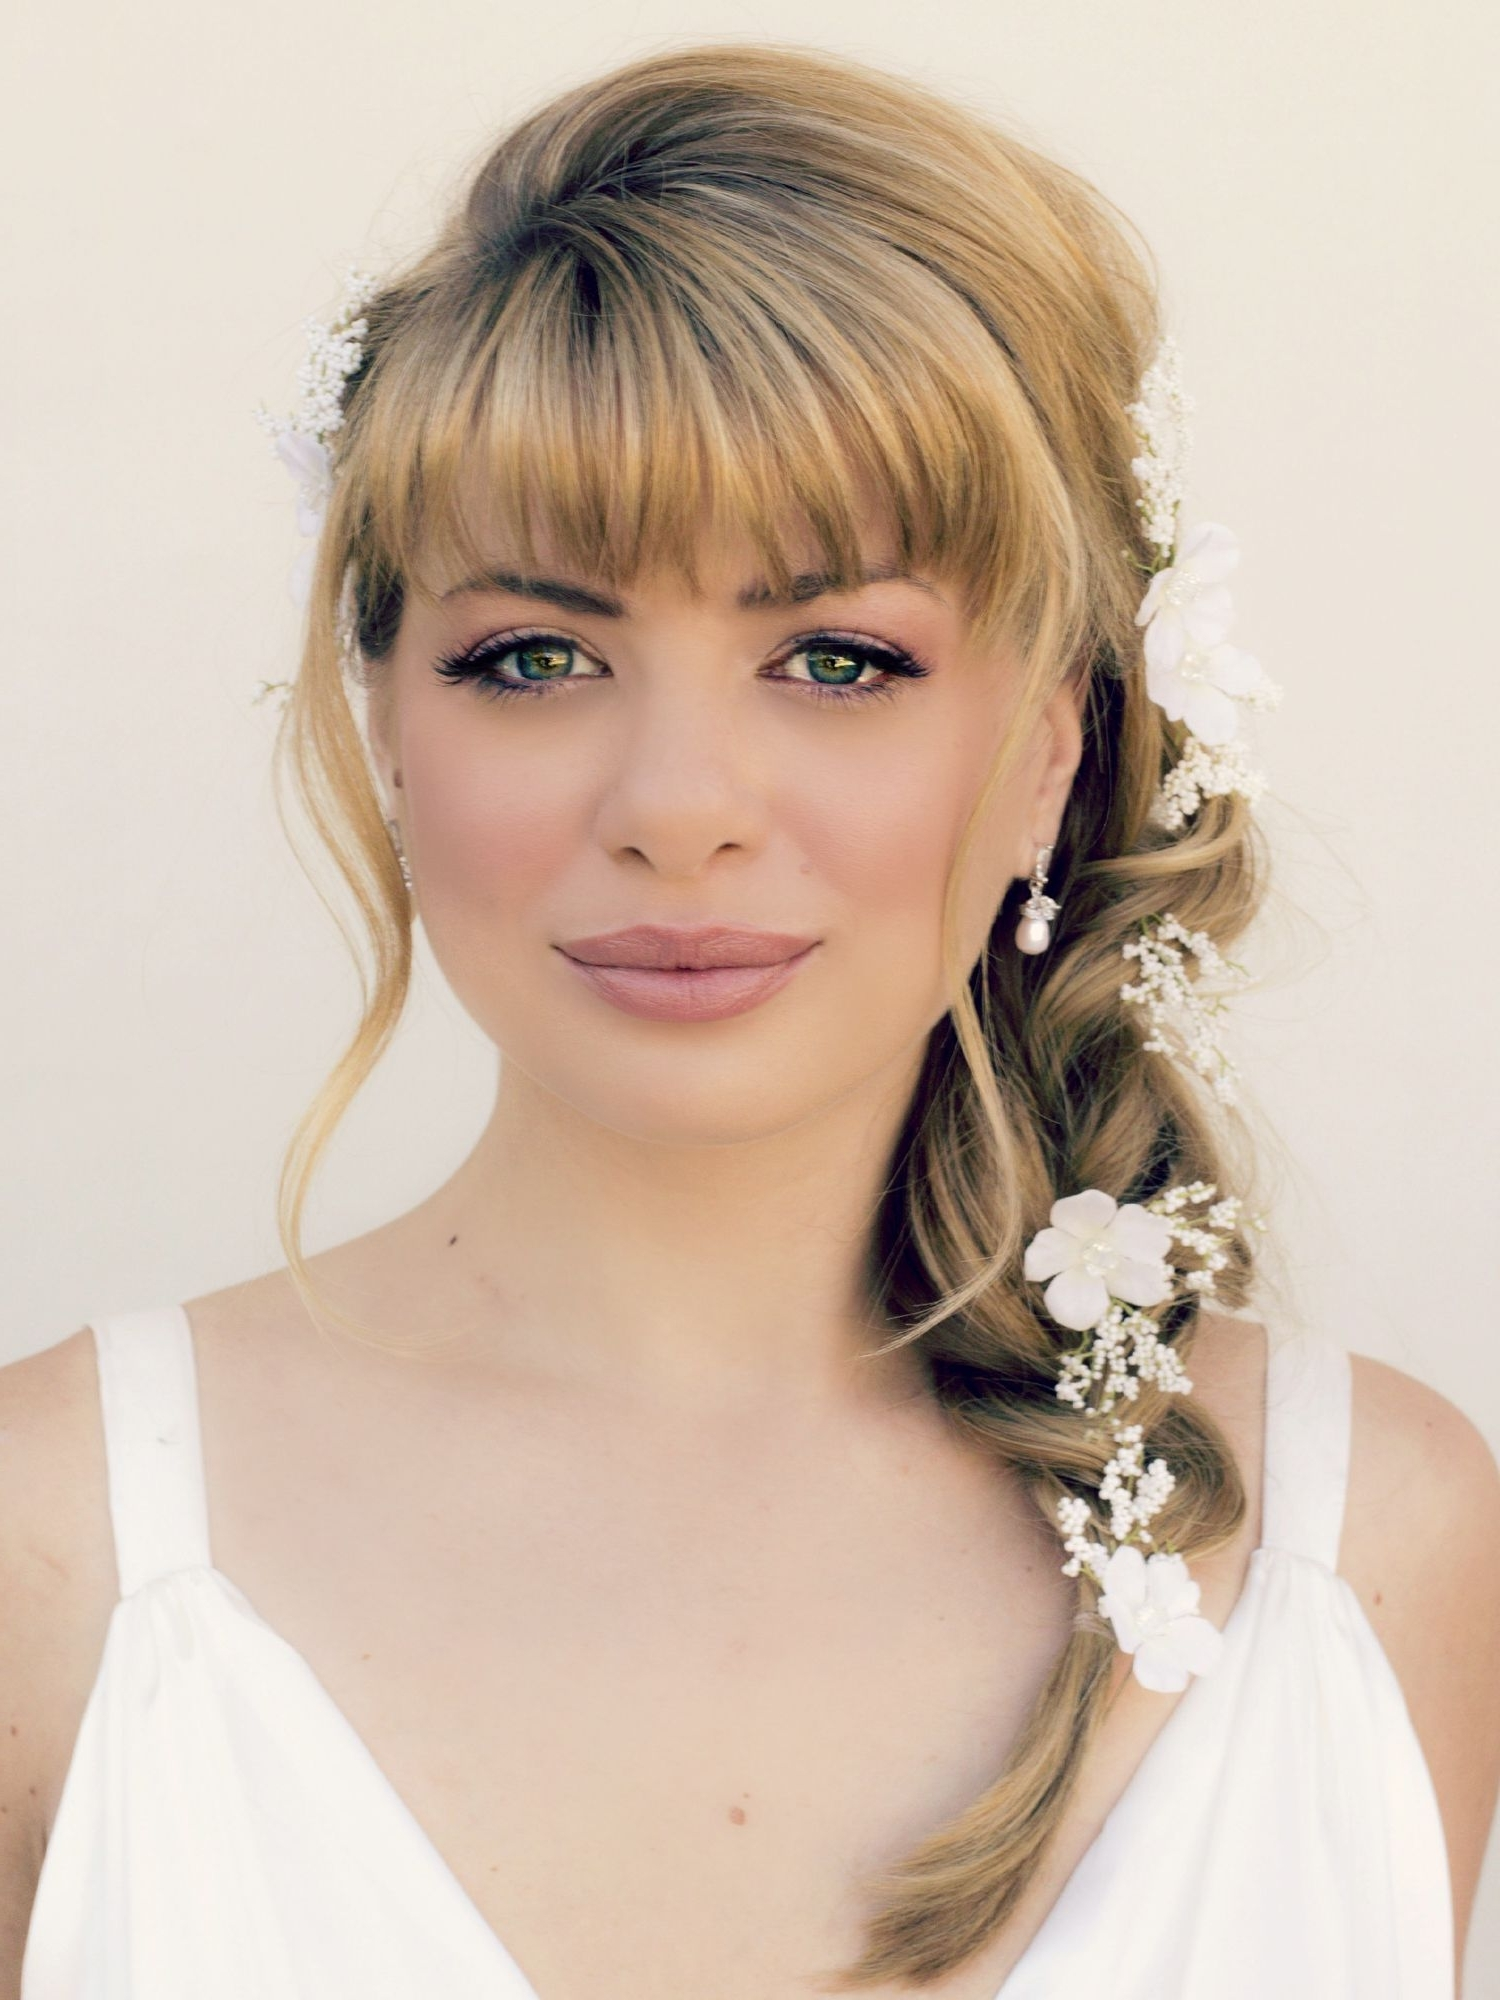 20 Hairstyles With Bangs To Inspire You For Fall (View 4 of 15)